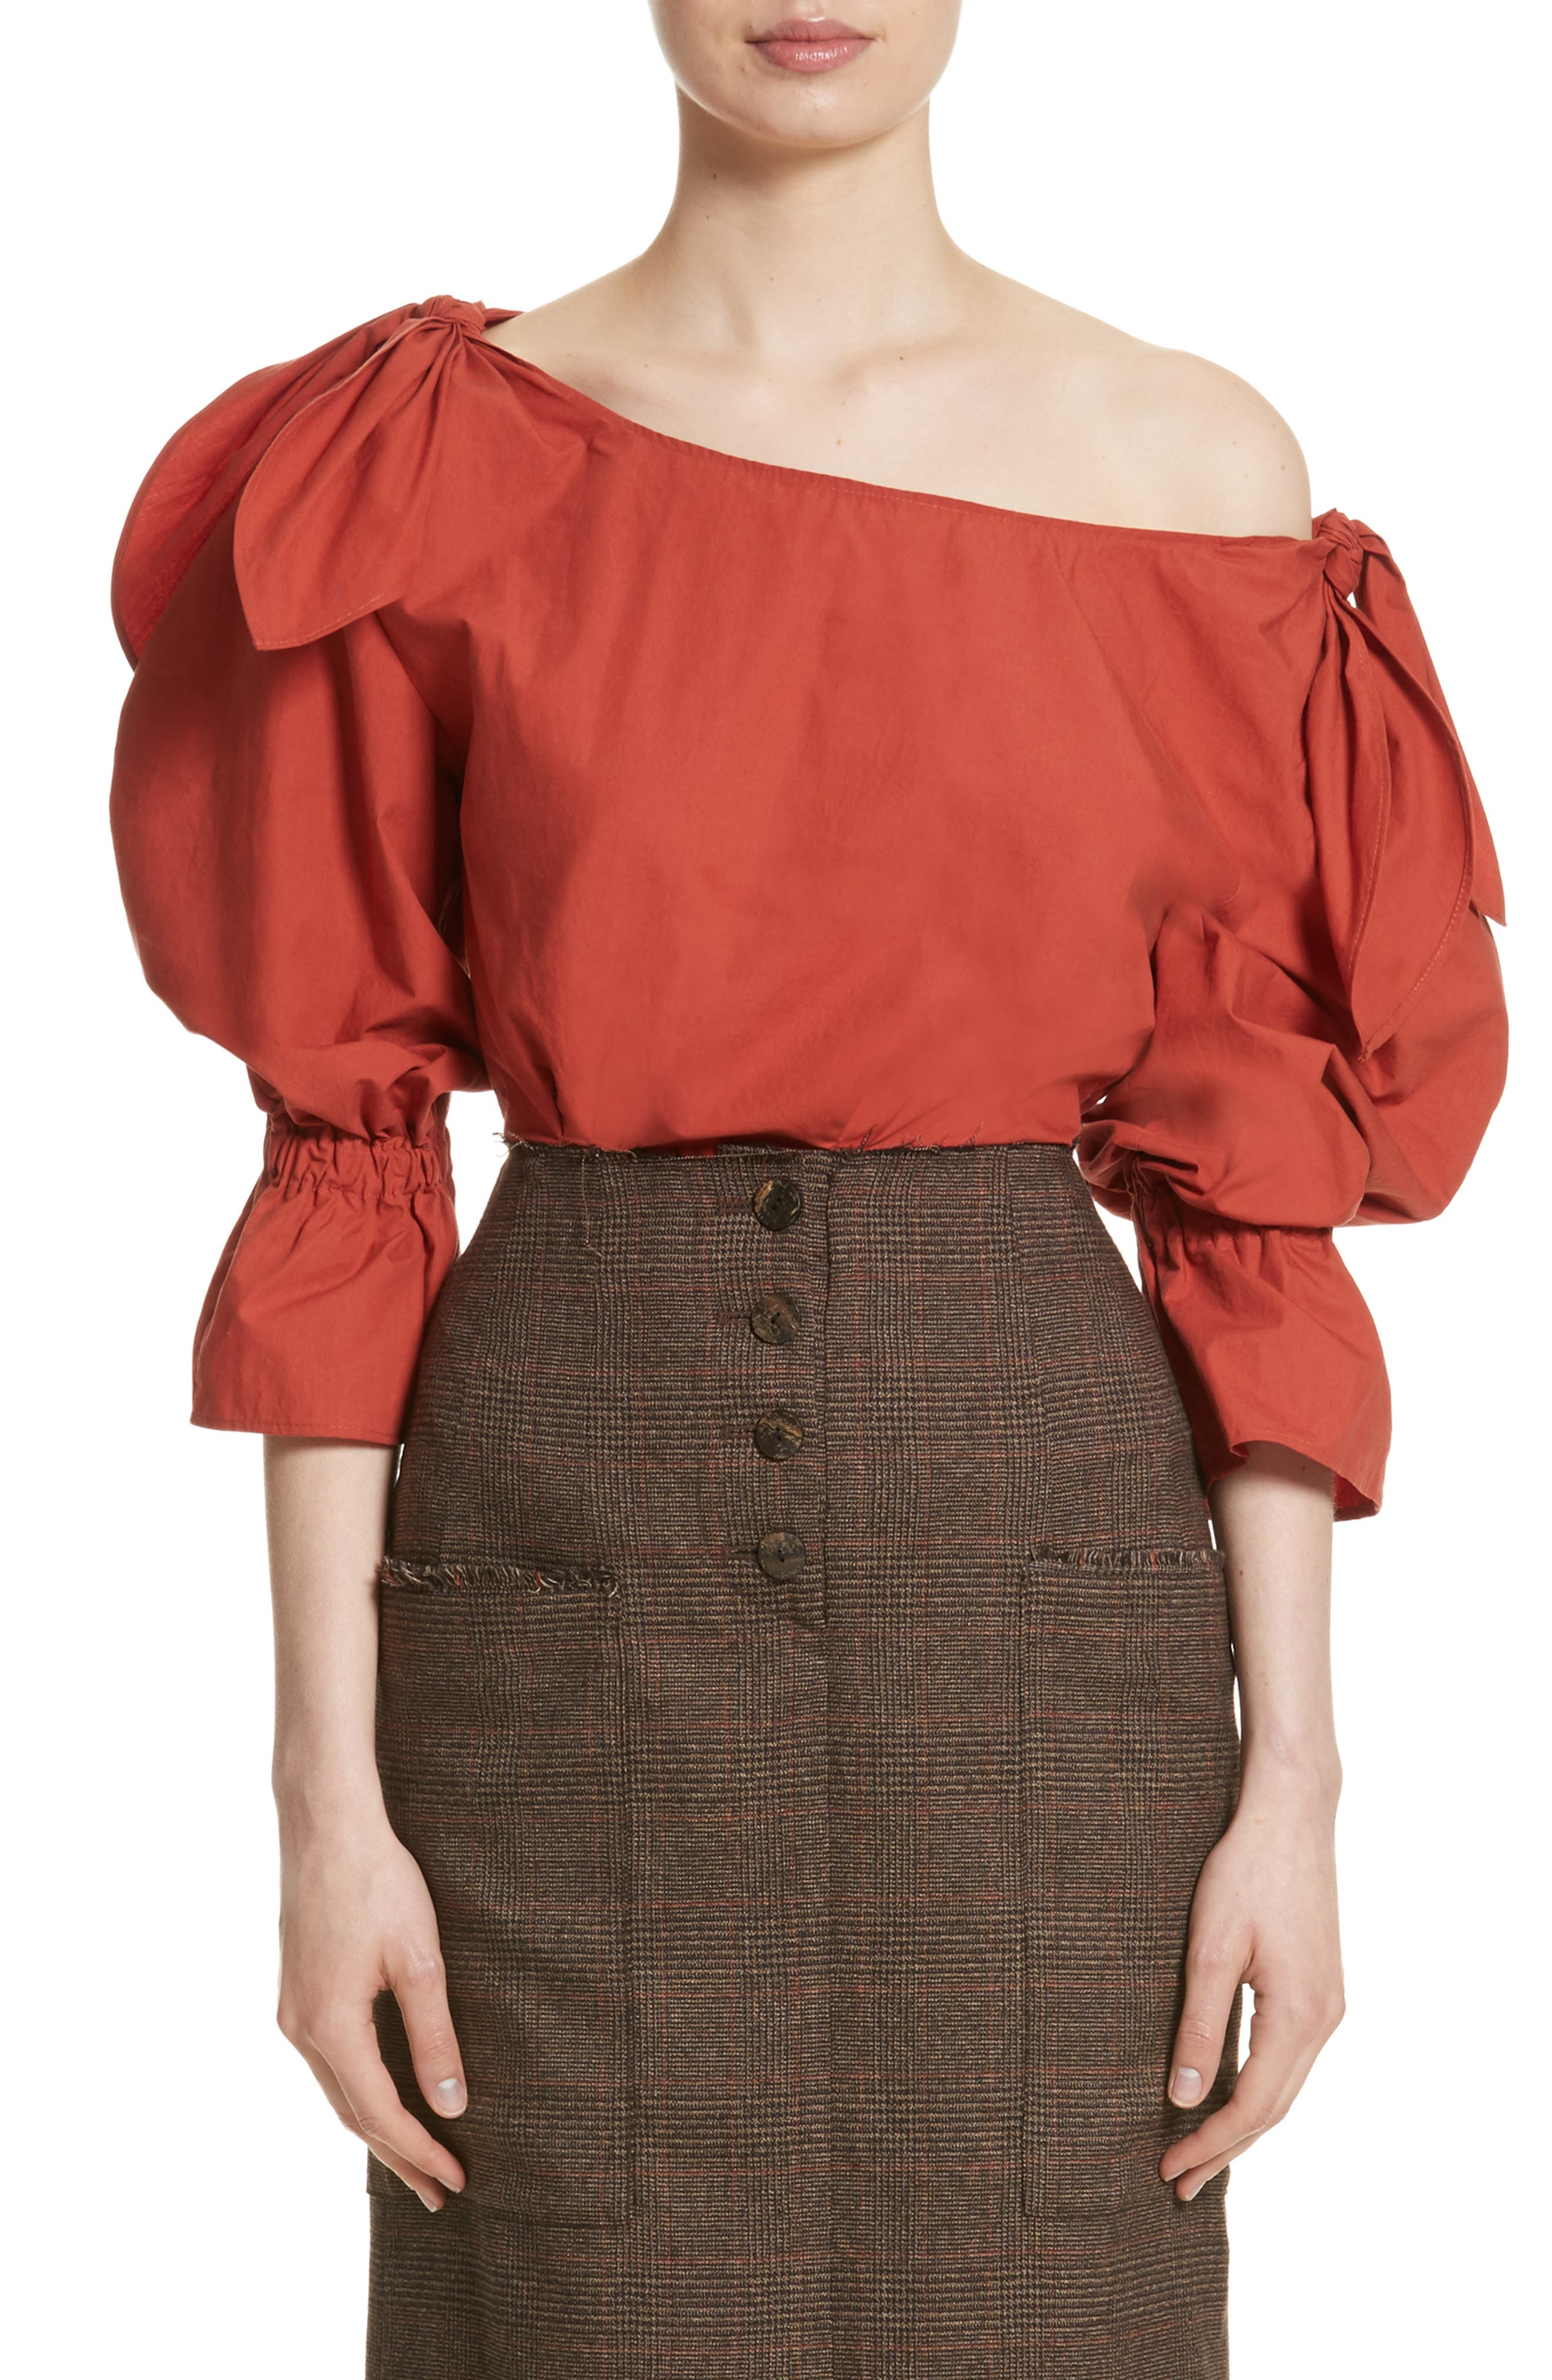 Michelle One-Shoulder Puff Sleeve Blouse,                         Main,                         color, Rust